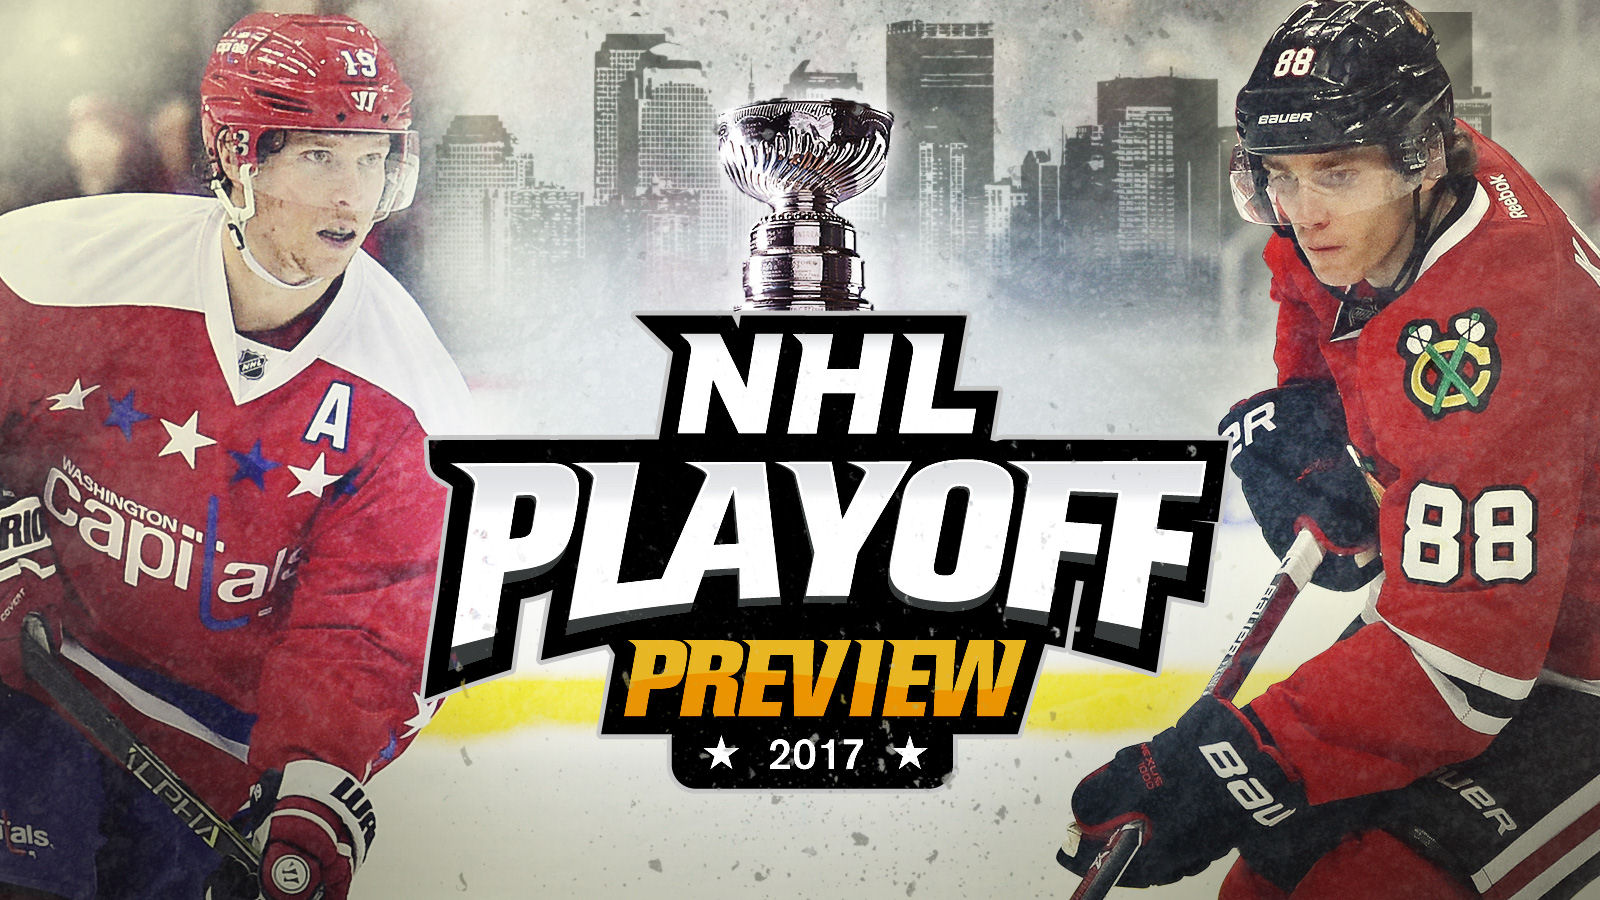 041117-NHL-Playoff-Preview-PI